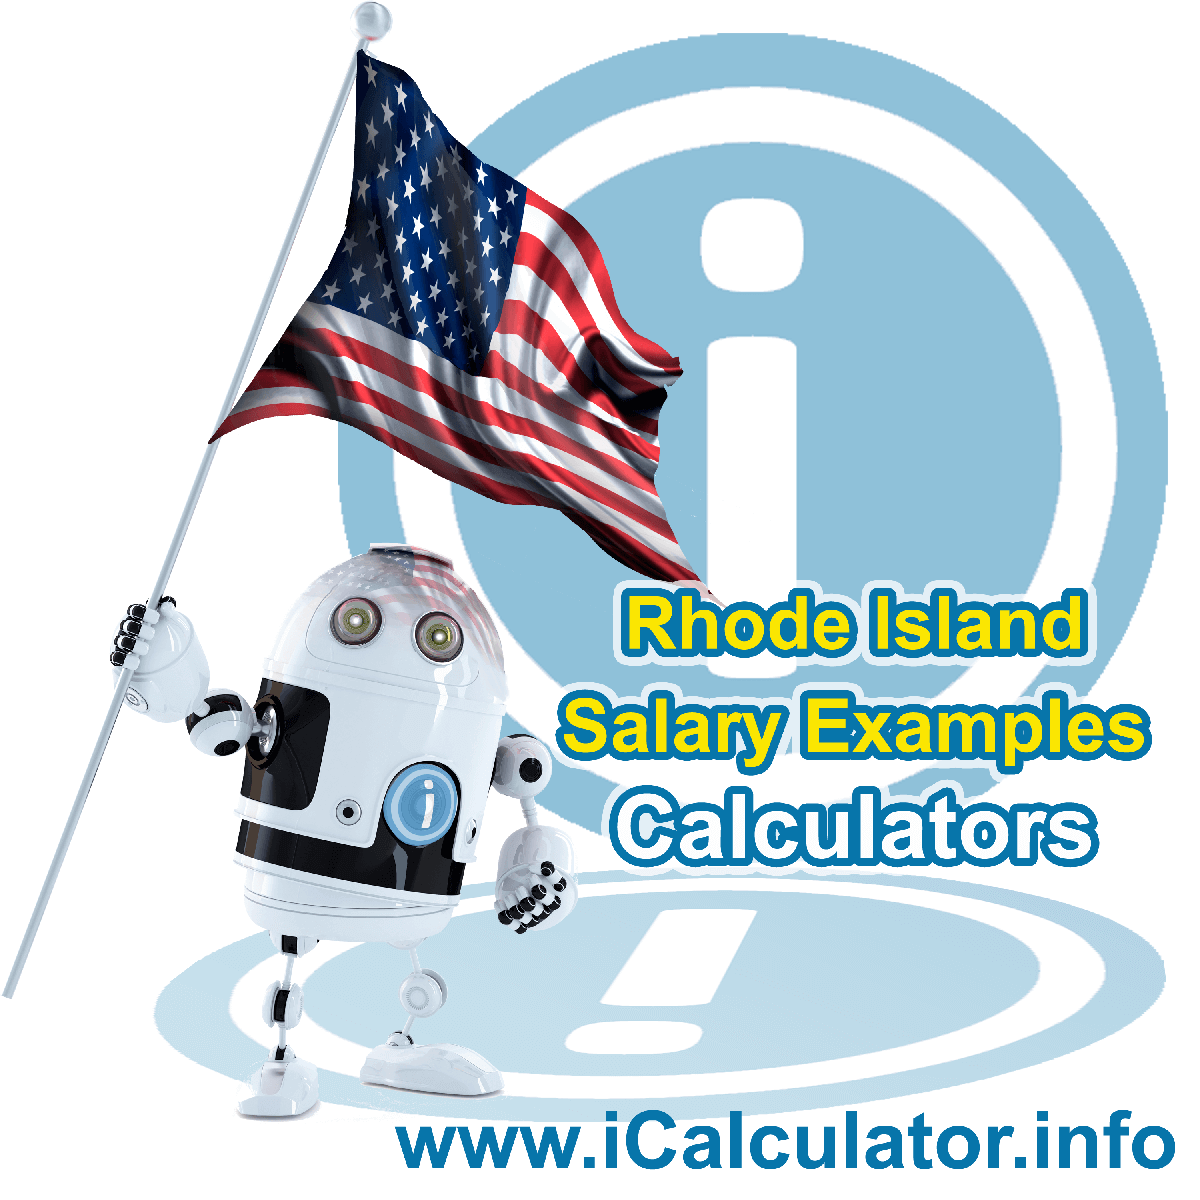 Rhode Island Salary Example for $70.00 in 2020 | iCalculator | $70.00 salary example for employee and employer paying Rhode Island State tincome taxes. Detailed salary after tax calculation including Rhode Island State Tax, Federal State Tax, Medicare Deductions, Social Security, Capital Gains and other income tax and salary deductions complete with supporting Rhode Island state tax tables